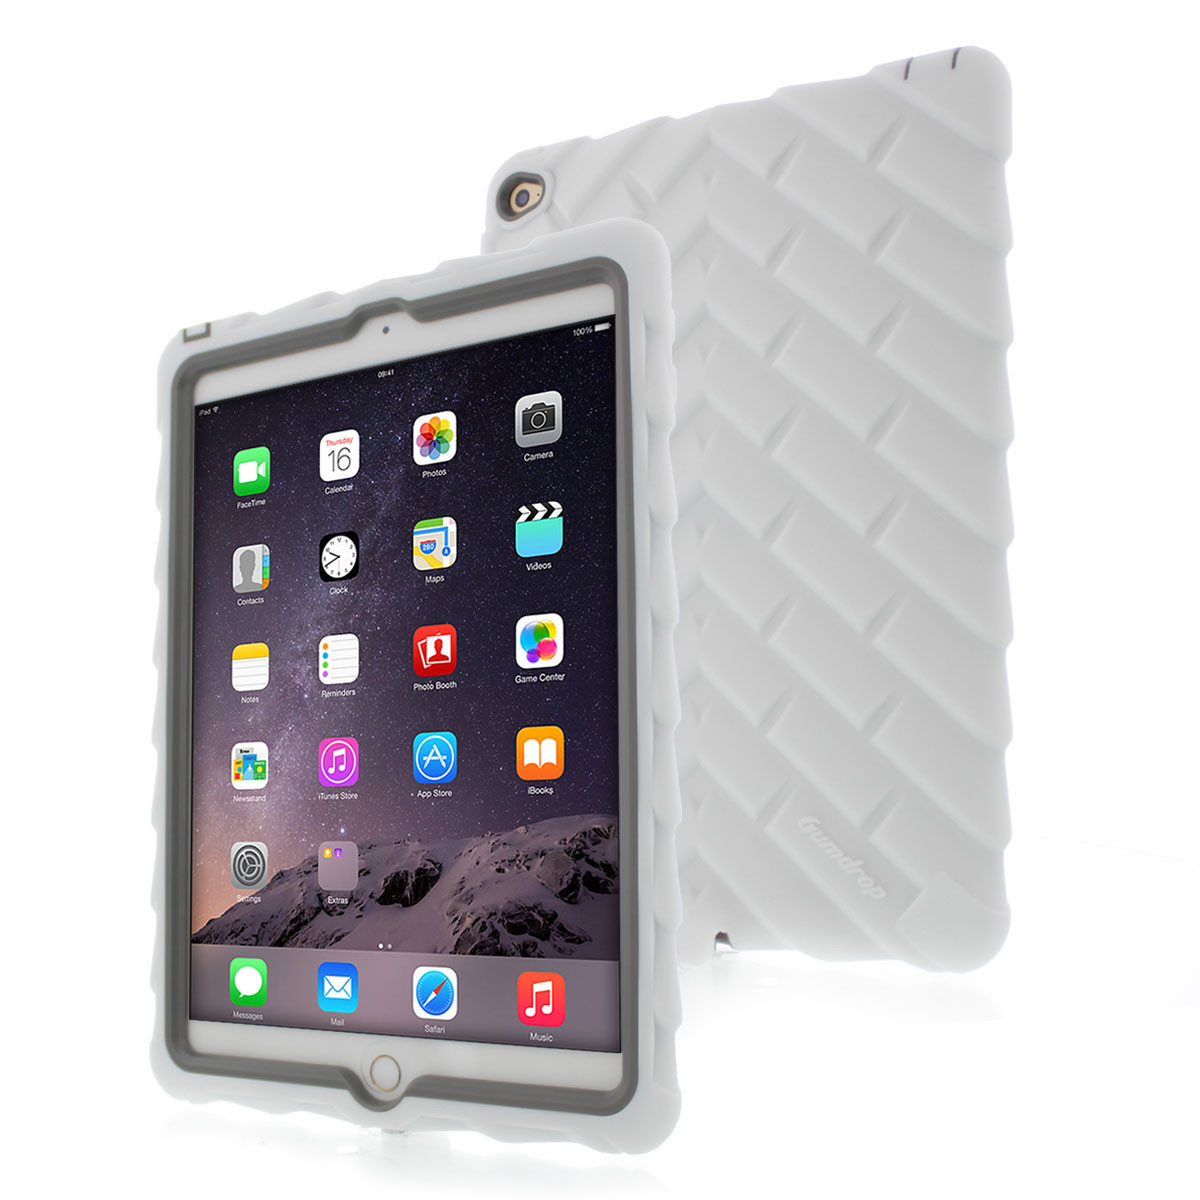 gumdrop cases droptech apple ipad air 2 rugged tablet case. Black Bedroom Furniture Sets. Home Design Ideas